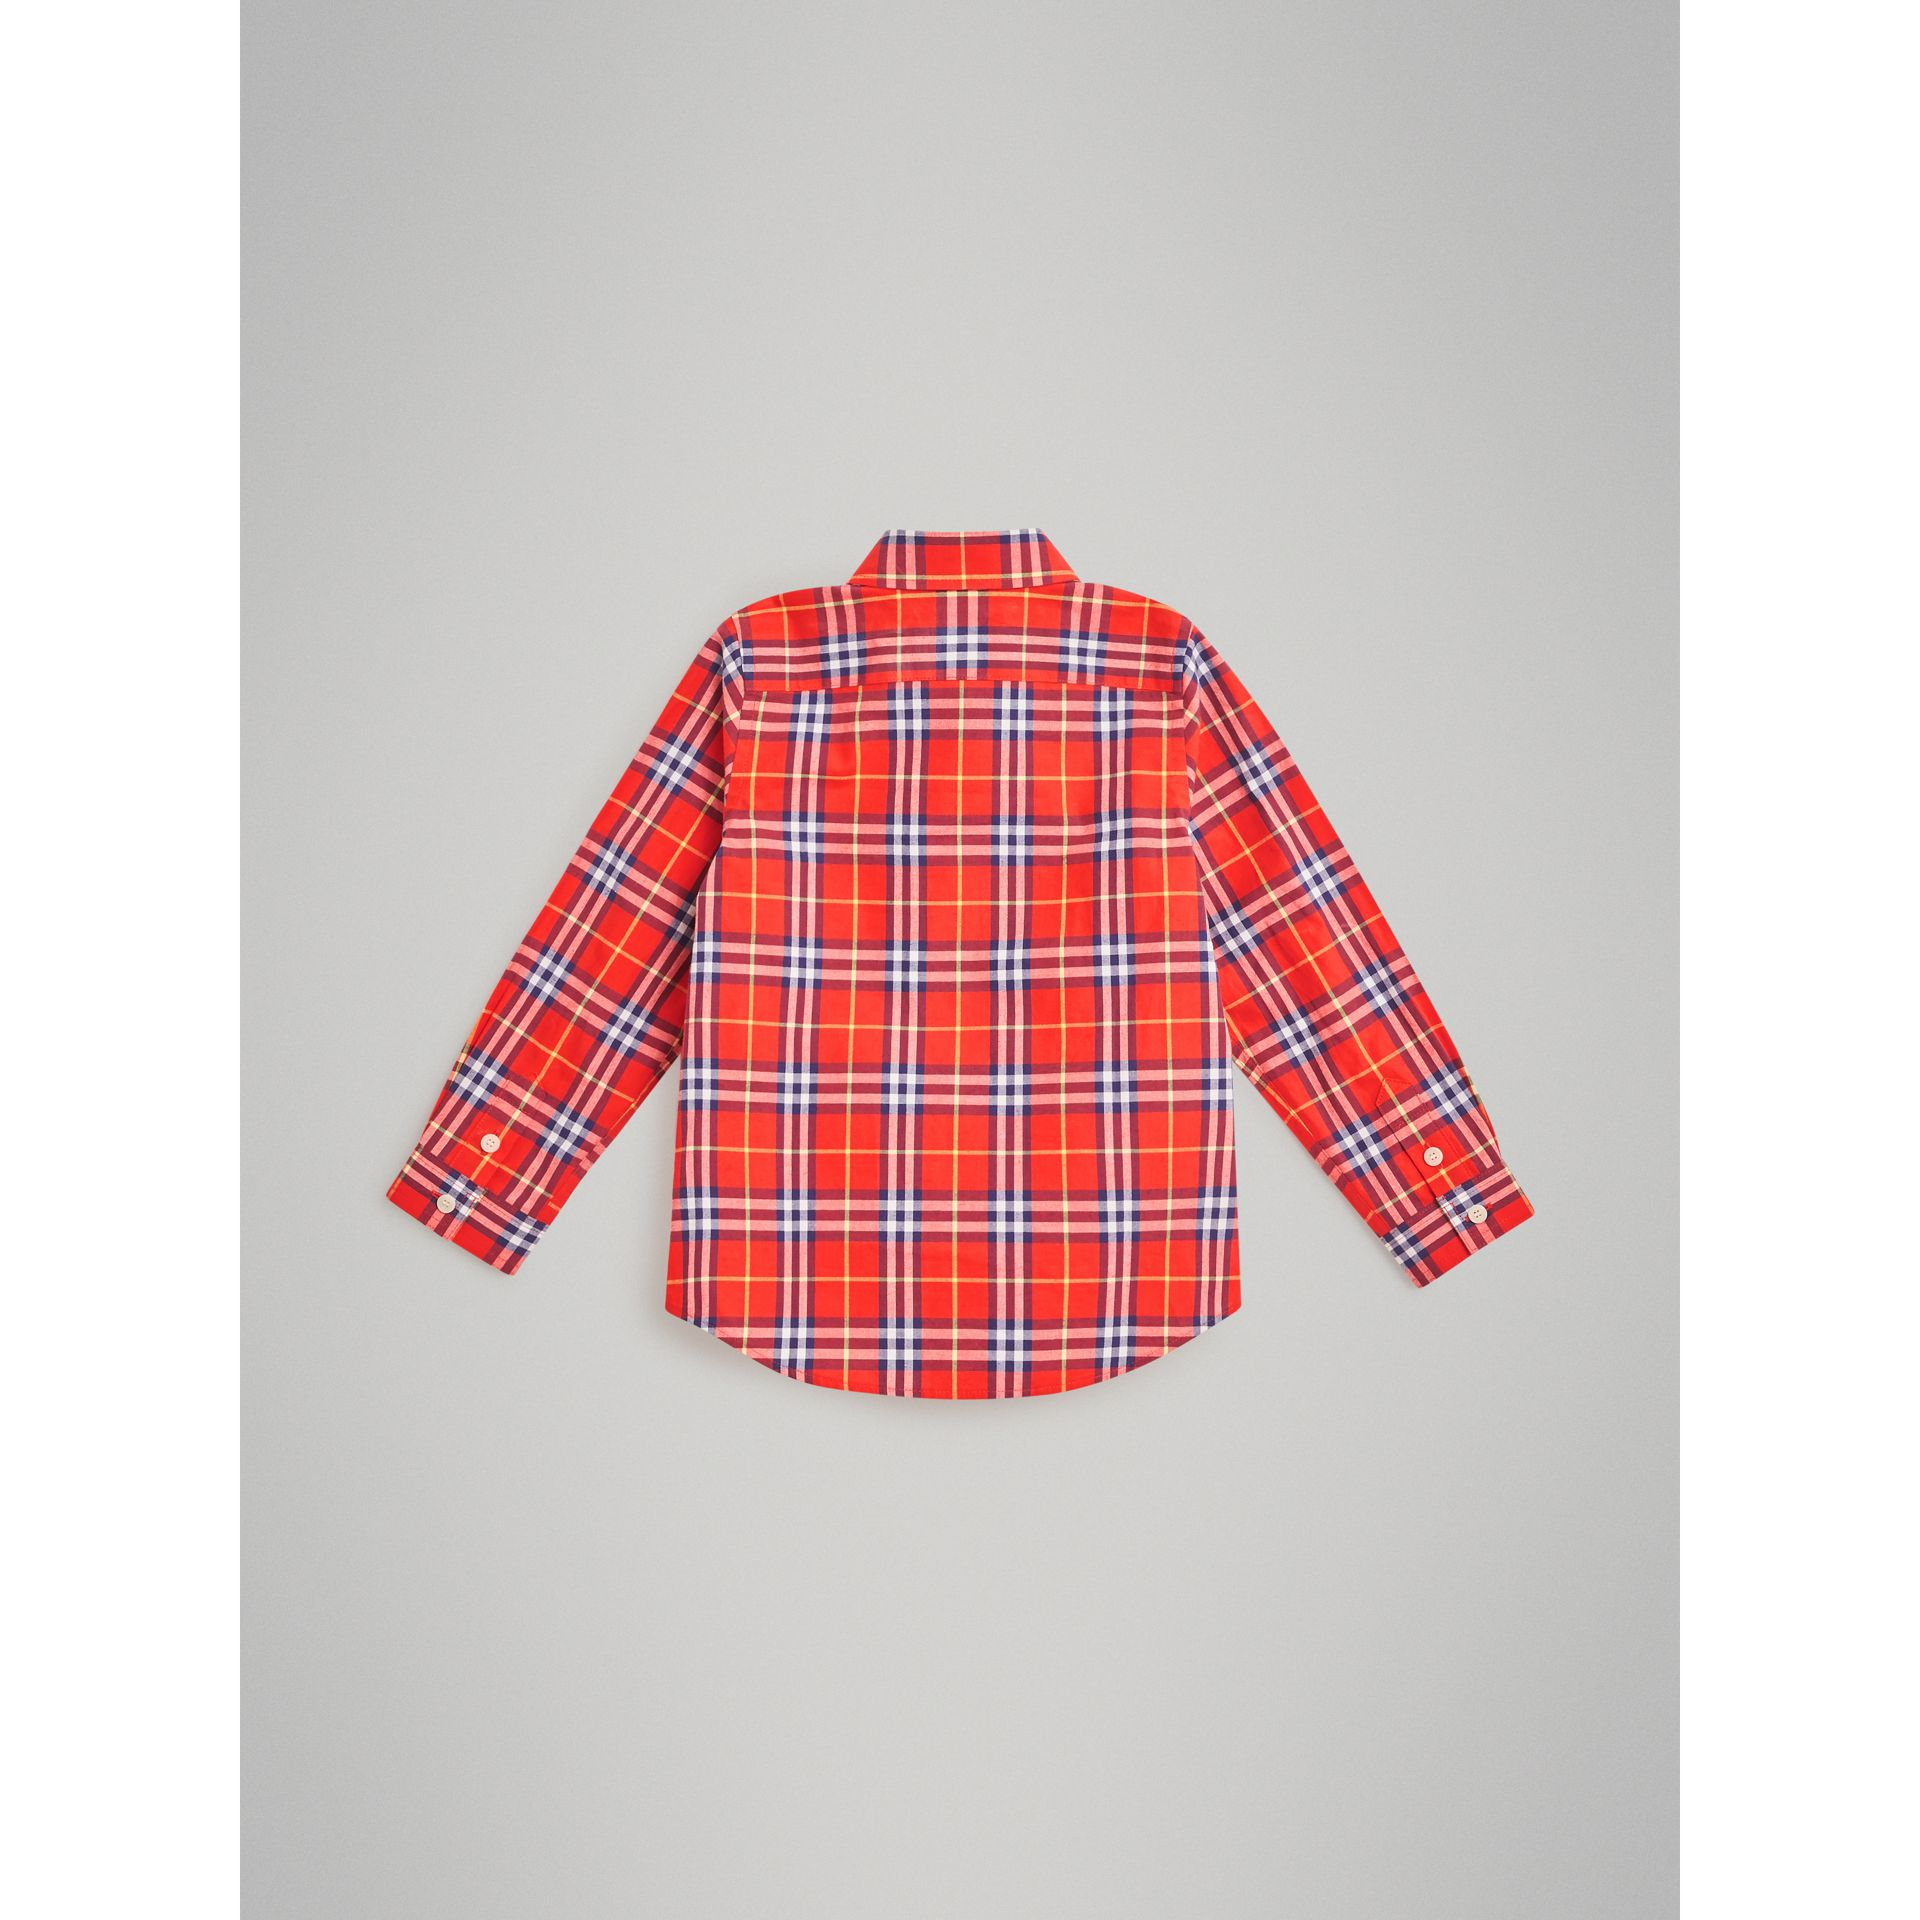 Button-down Collar Check Flannel Shirt in Orange Red | Burberry Australia - gallery image 3